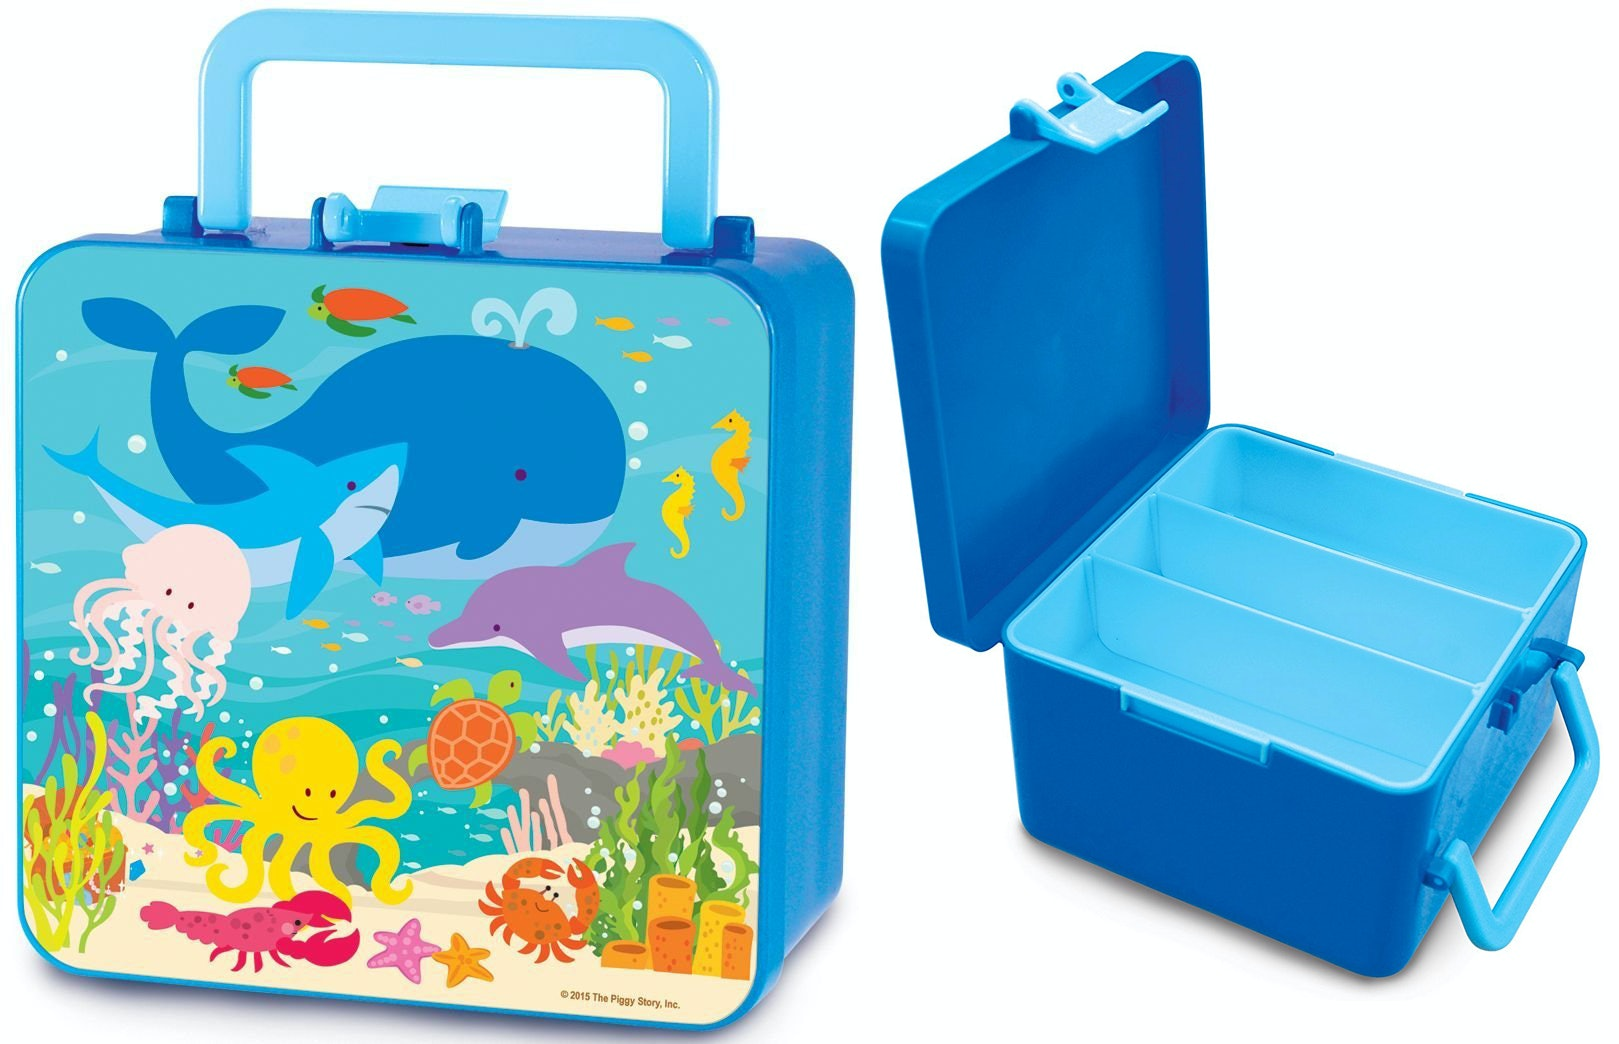 96c54dab039e The 13 Best Hard, Plastic Lunch Boxes For Kids That Are As Cute As ...